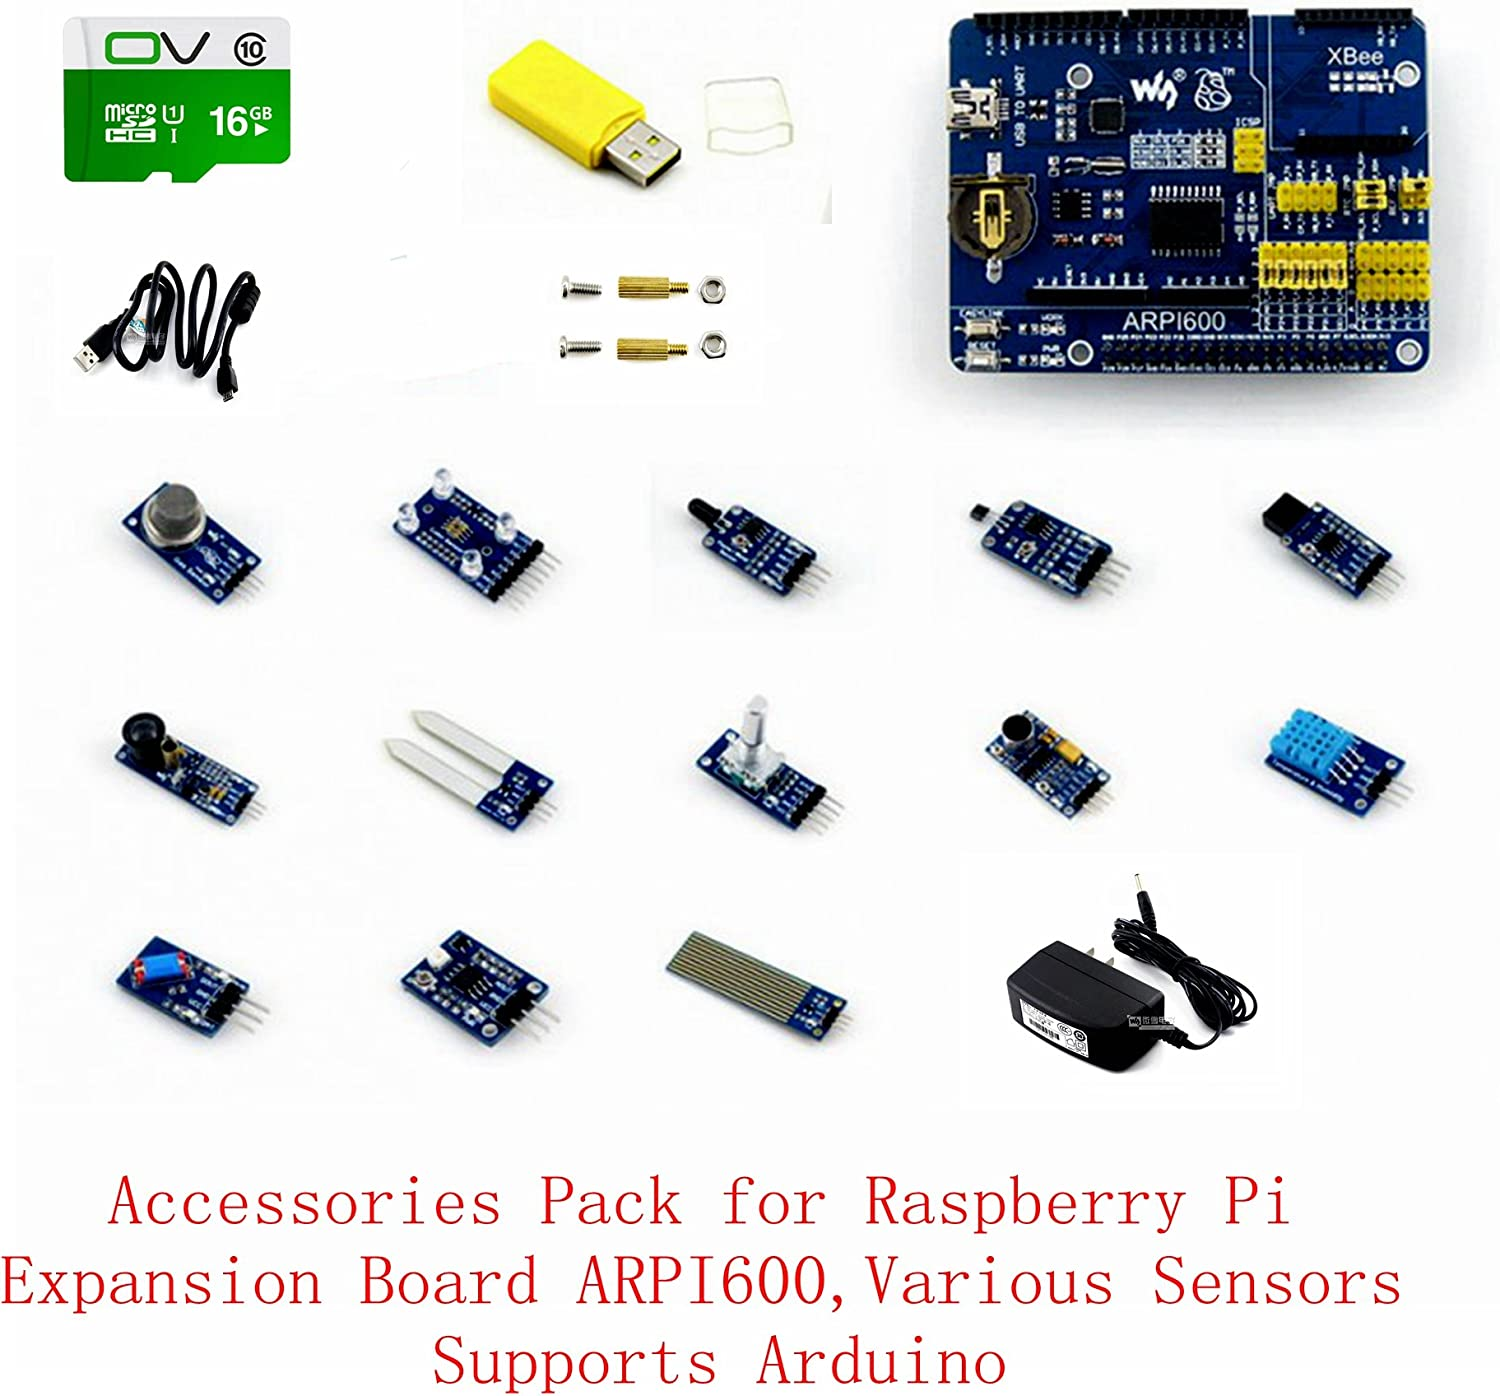 venel Electronic Component, Raspberry Pi Accessories Pack d, An ...